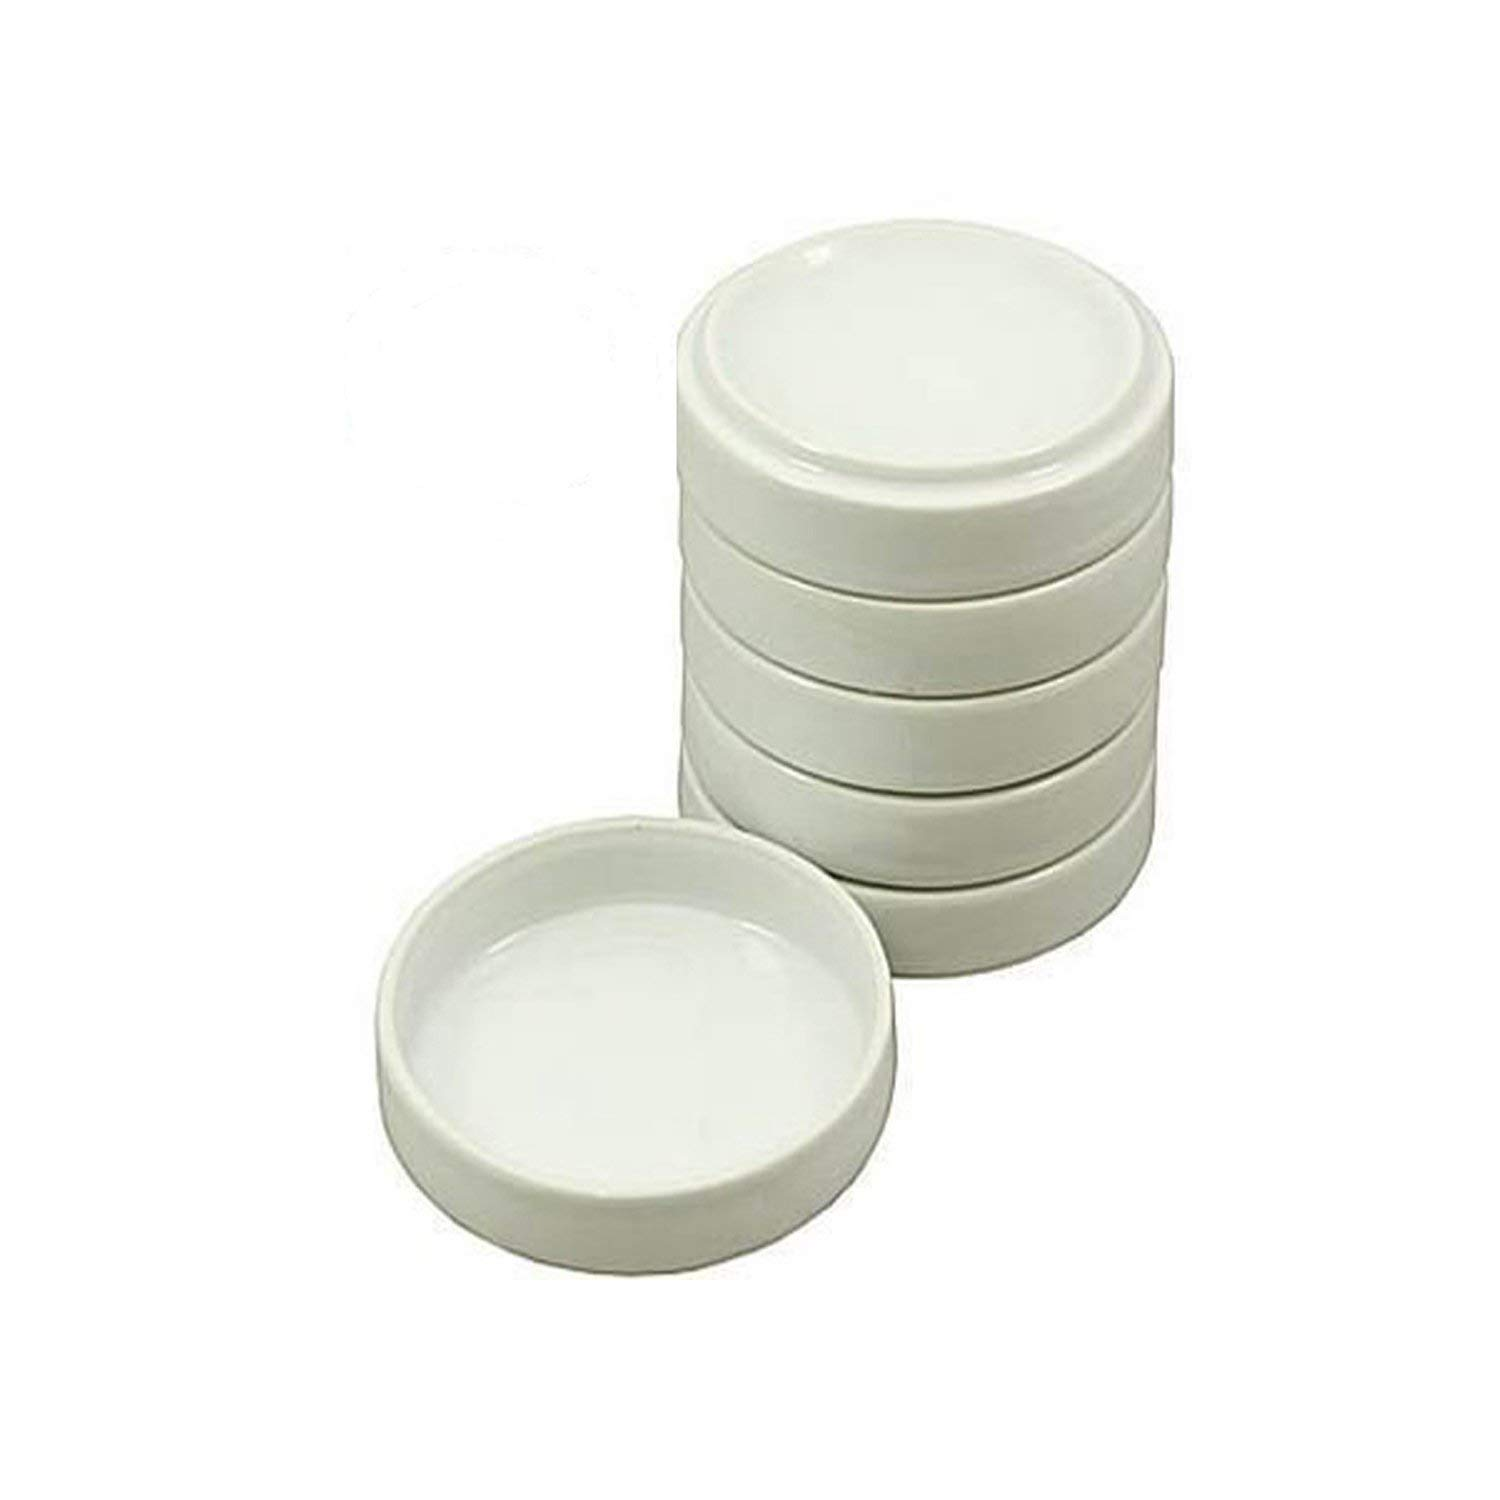 Vivid Porcelain White Round Watercolor Palette Container Dish with Lid – for Painting, Small Jewelry Storage, Sauce Dishes – 5-Pack